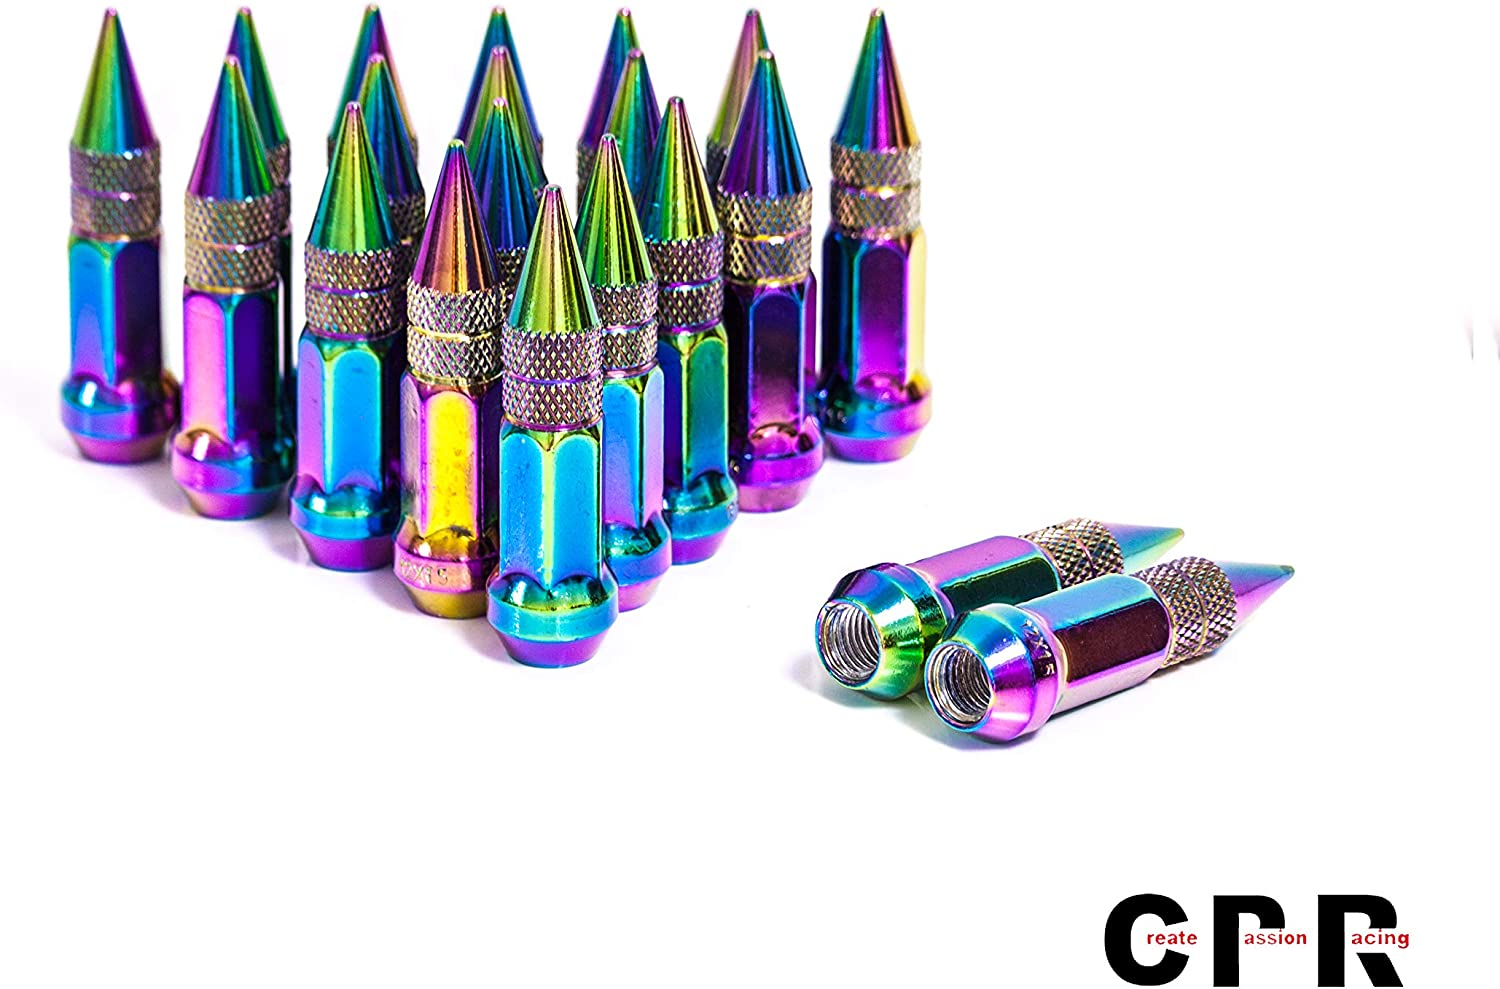 CPR CLOSE ENDED STEEL 17HEX SPIKED WHEEL RACING LUG NUTS NEO CHROME12X1.25 KEY